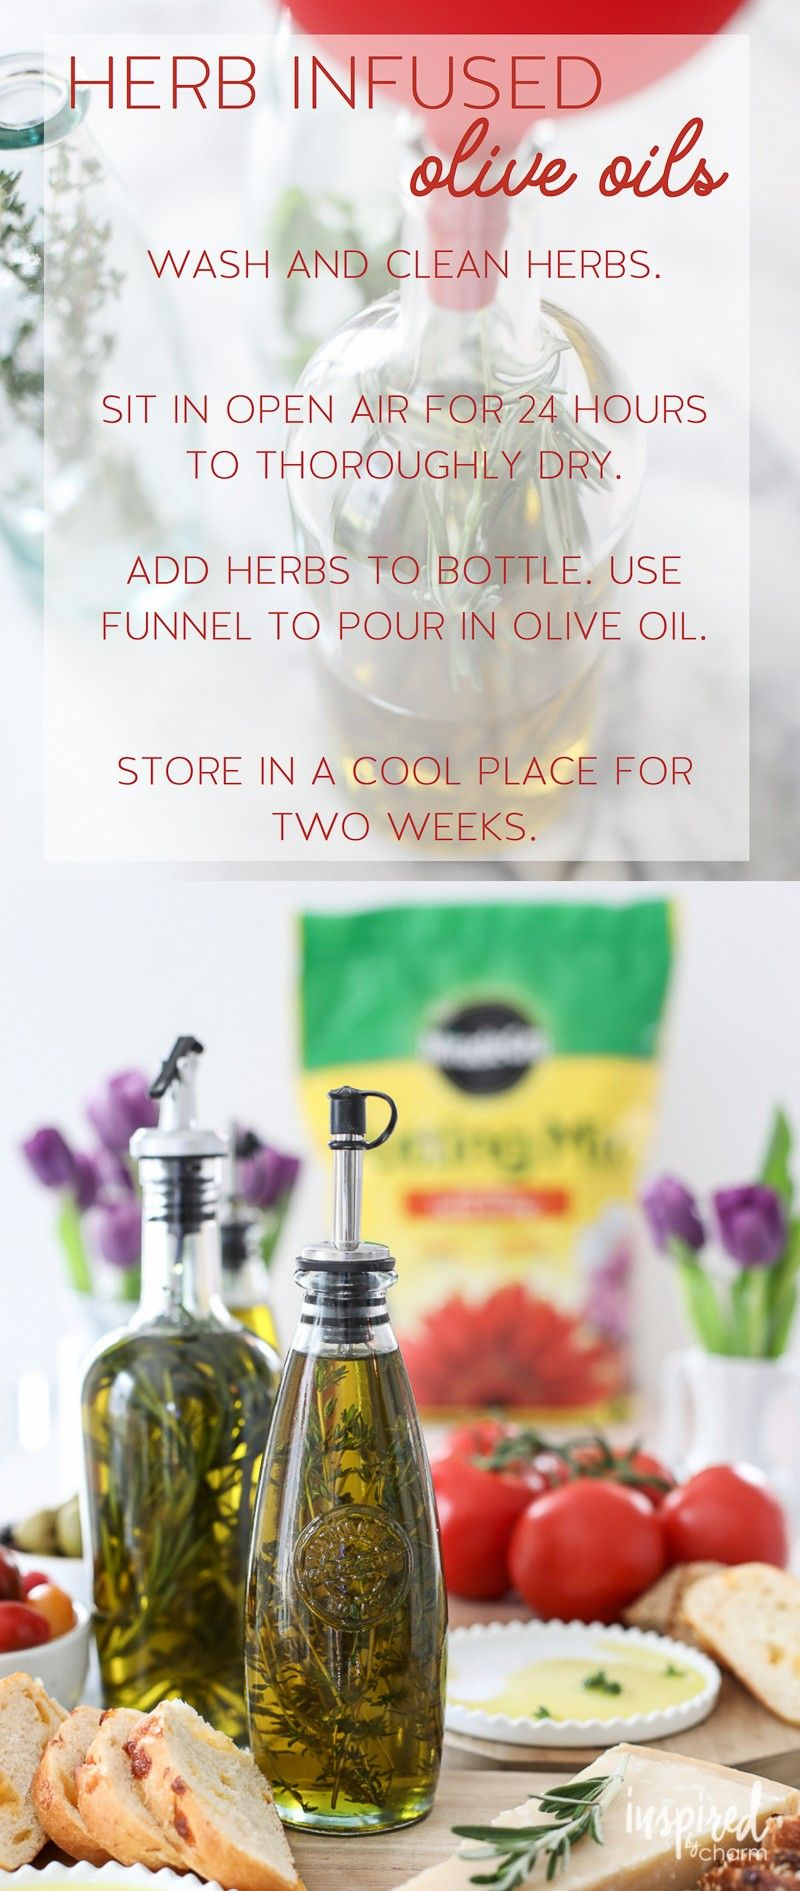 [ad] Combine entertaining and gardening by making your own Herb Infused Olive Oil with herbs grown in @miraclegro Potting Mix. #AndProject